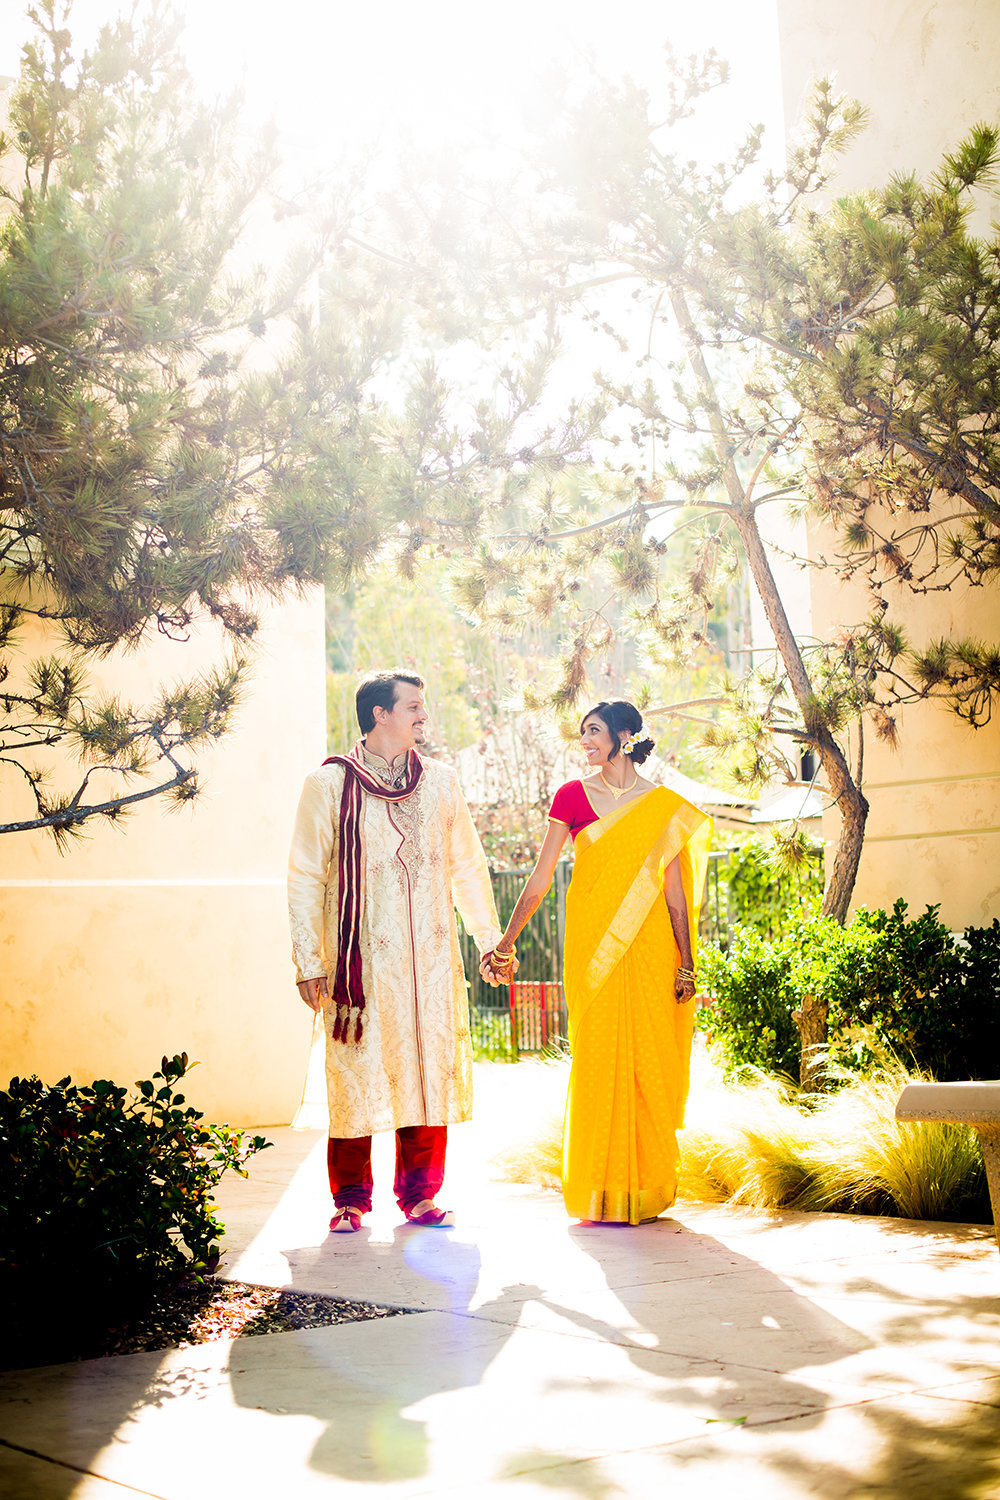 Cute Pose for Indian Hindu Couple with Bride in Sari and Groom in Sherwani